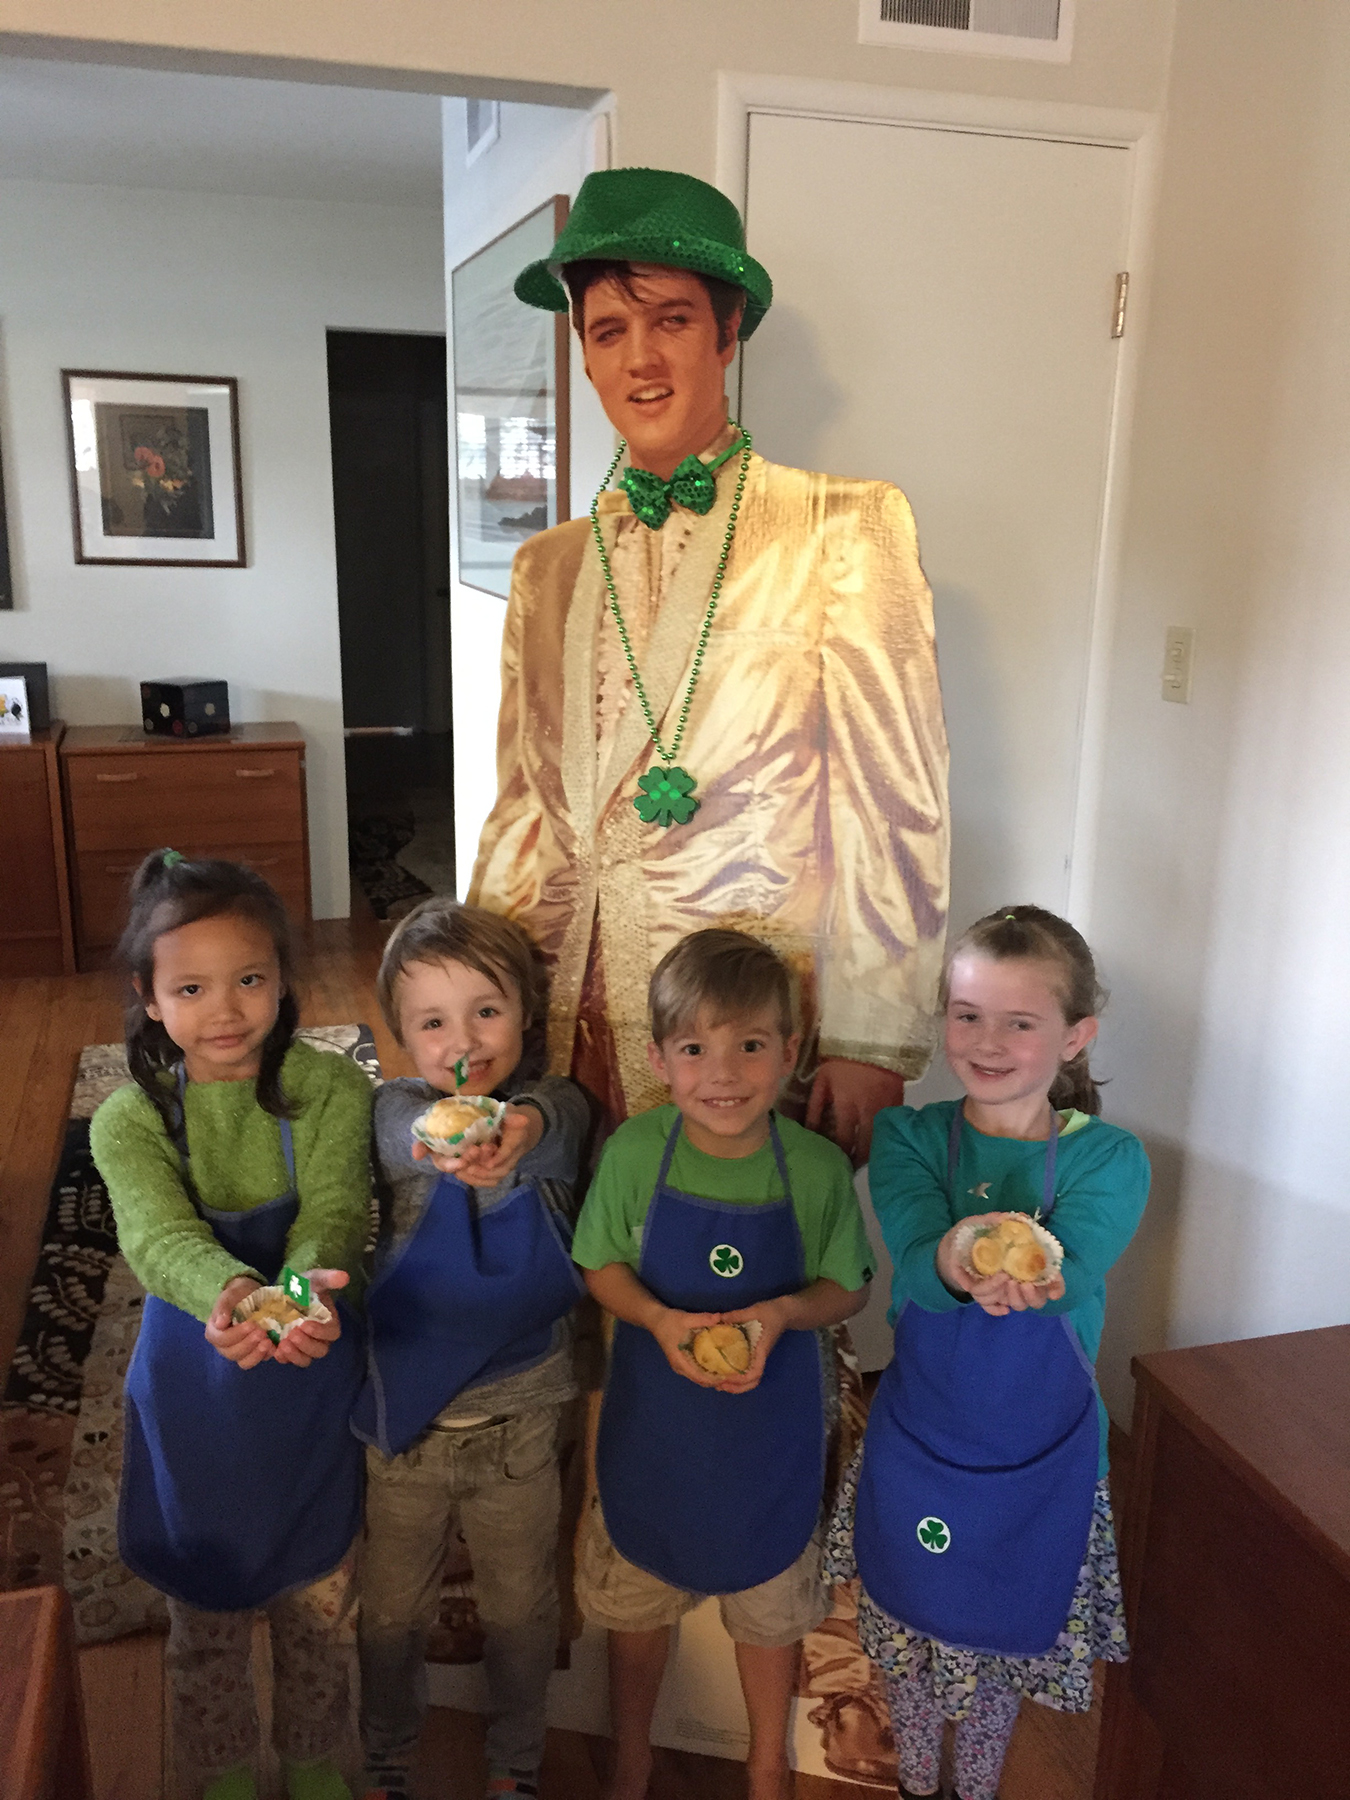 Robin Seeley  Farrah, Julian, Enzo and Abby can confirm that reports of Elvis's death have been greatly exaggerated. The King returned to supervise the latest session of the Culinary Academy of Post Street.